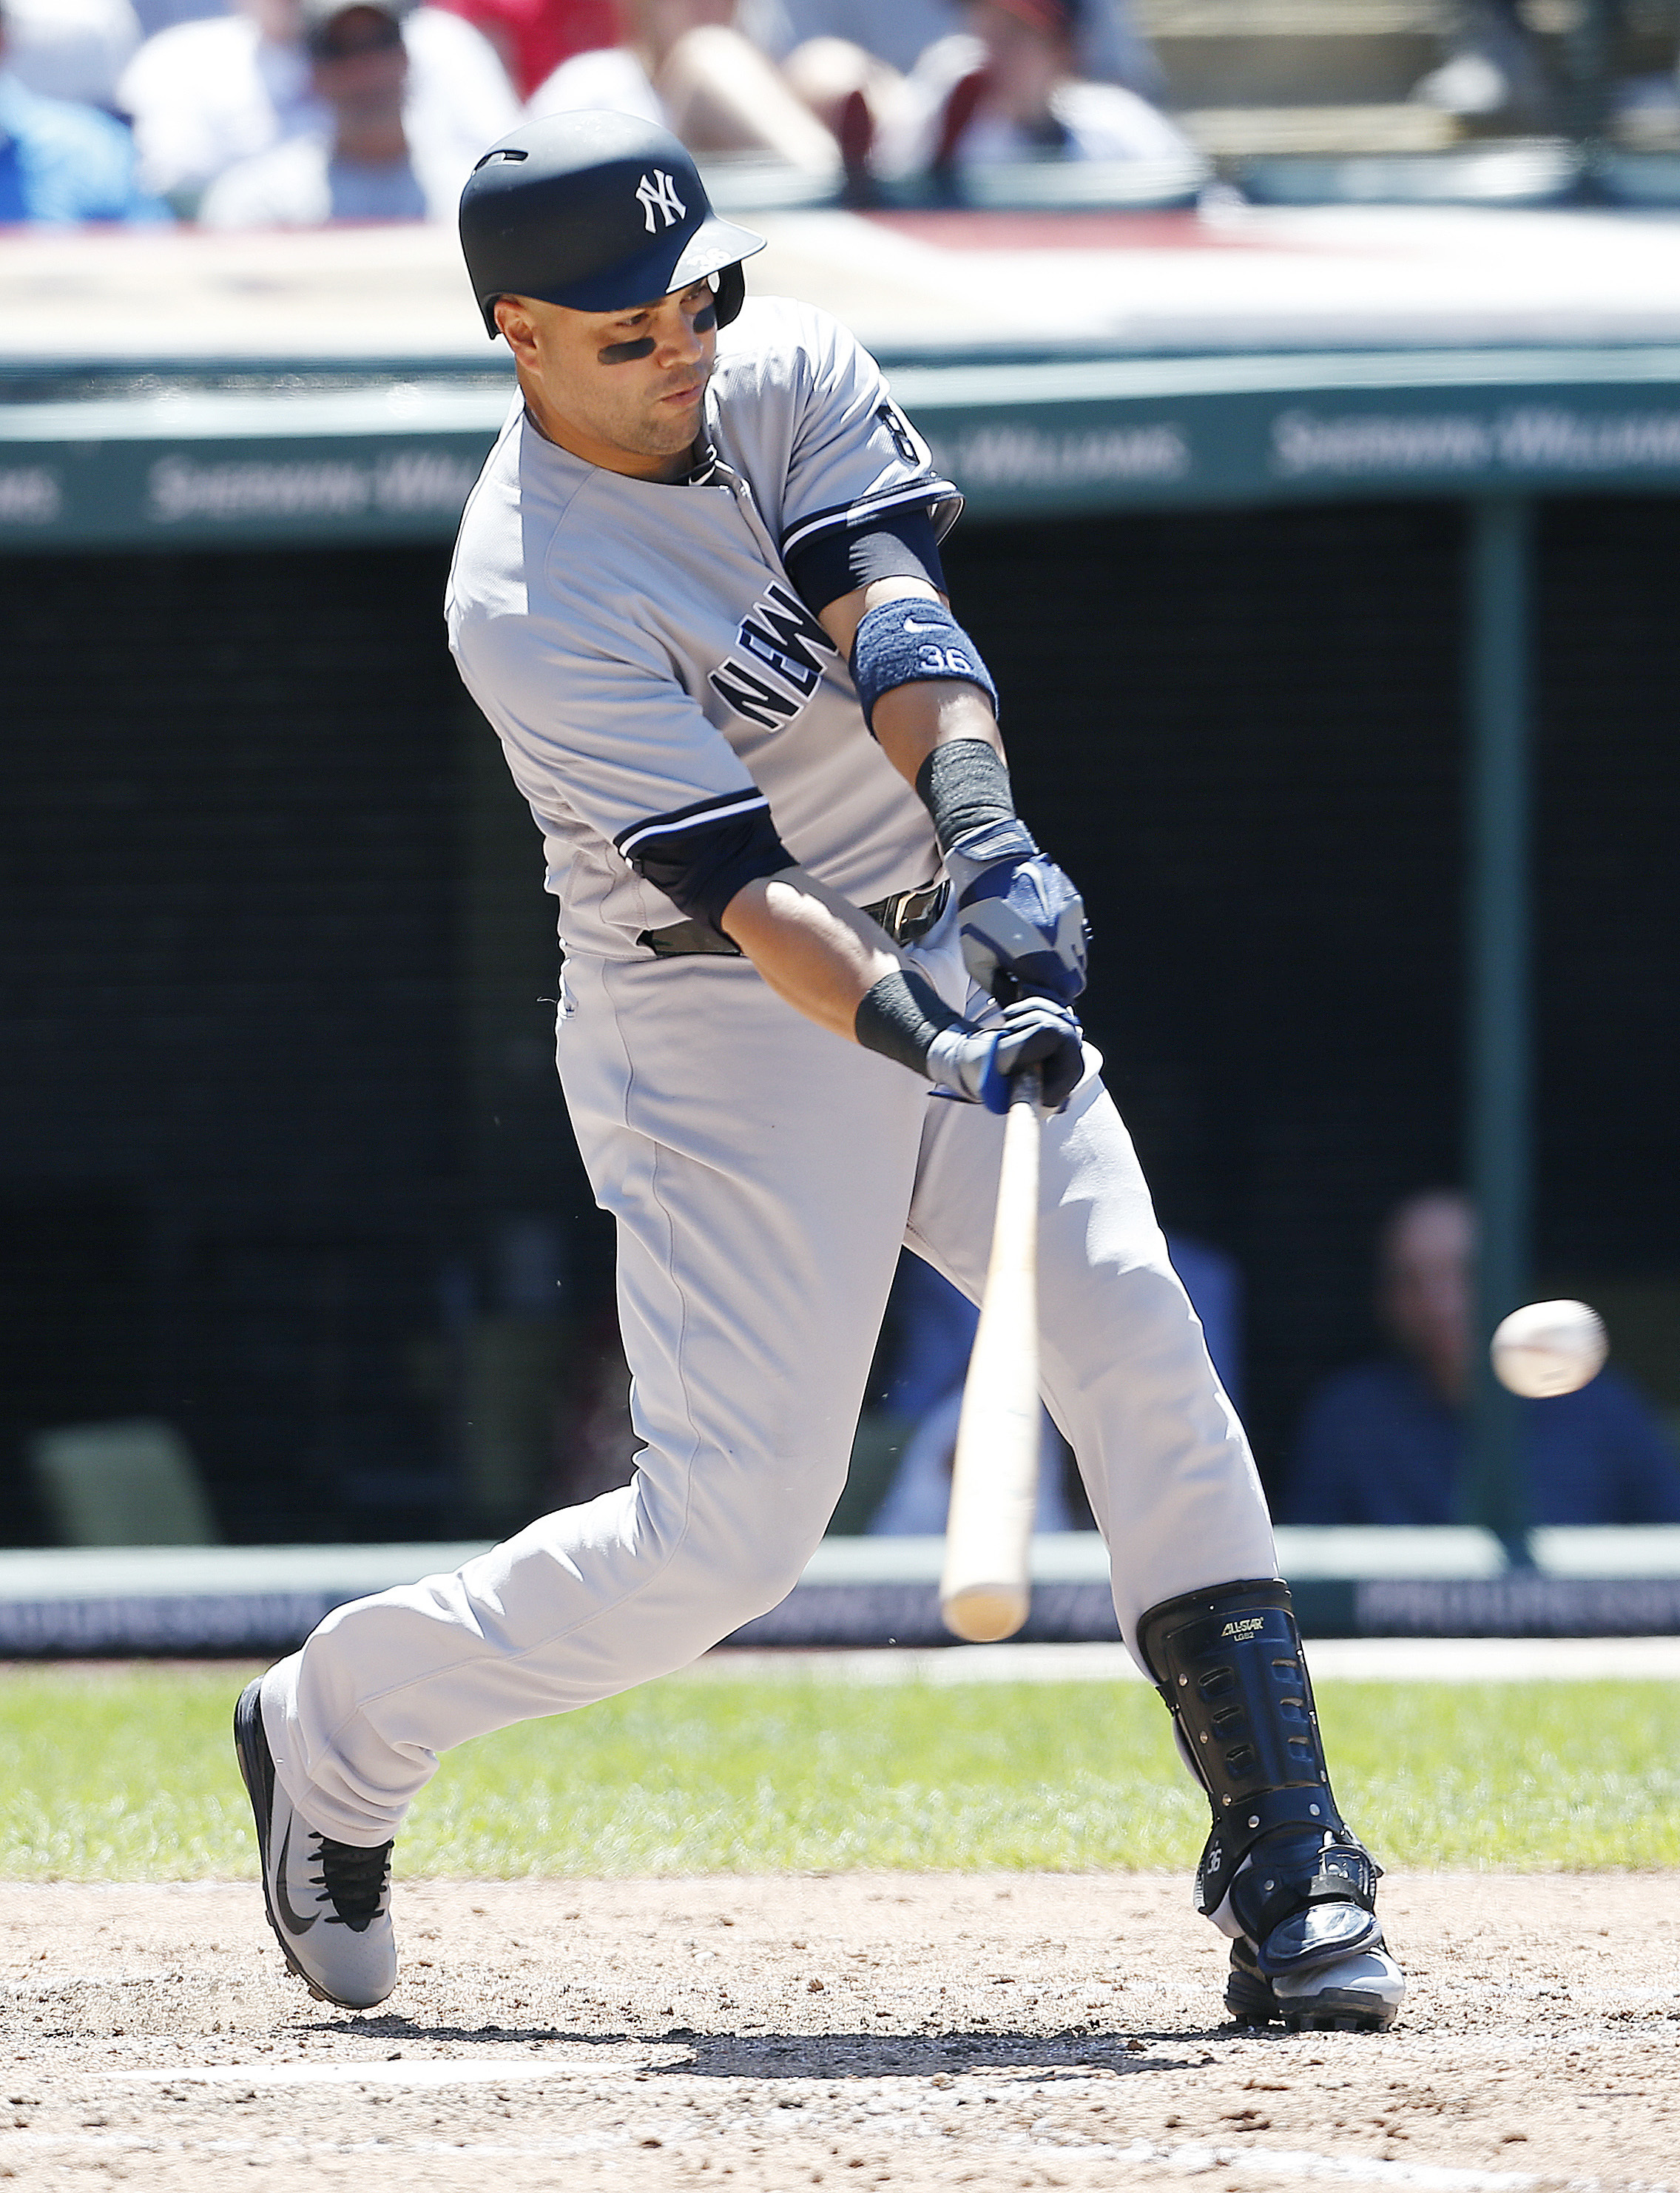 New York Yankees' Carlos Beltran hits an RBI-single off Cleveland Indians relief pitcher TJ House during the fifth inning of a baseball game Sunday, July 10, 2016, in Cleveland. (AP Photo/Ron Schwane)